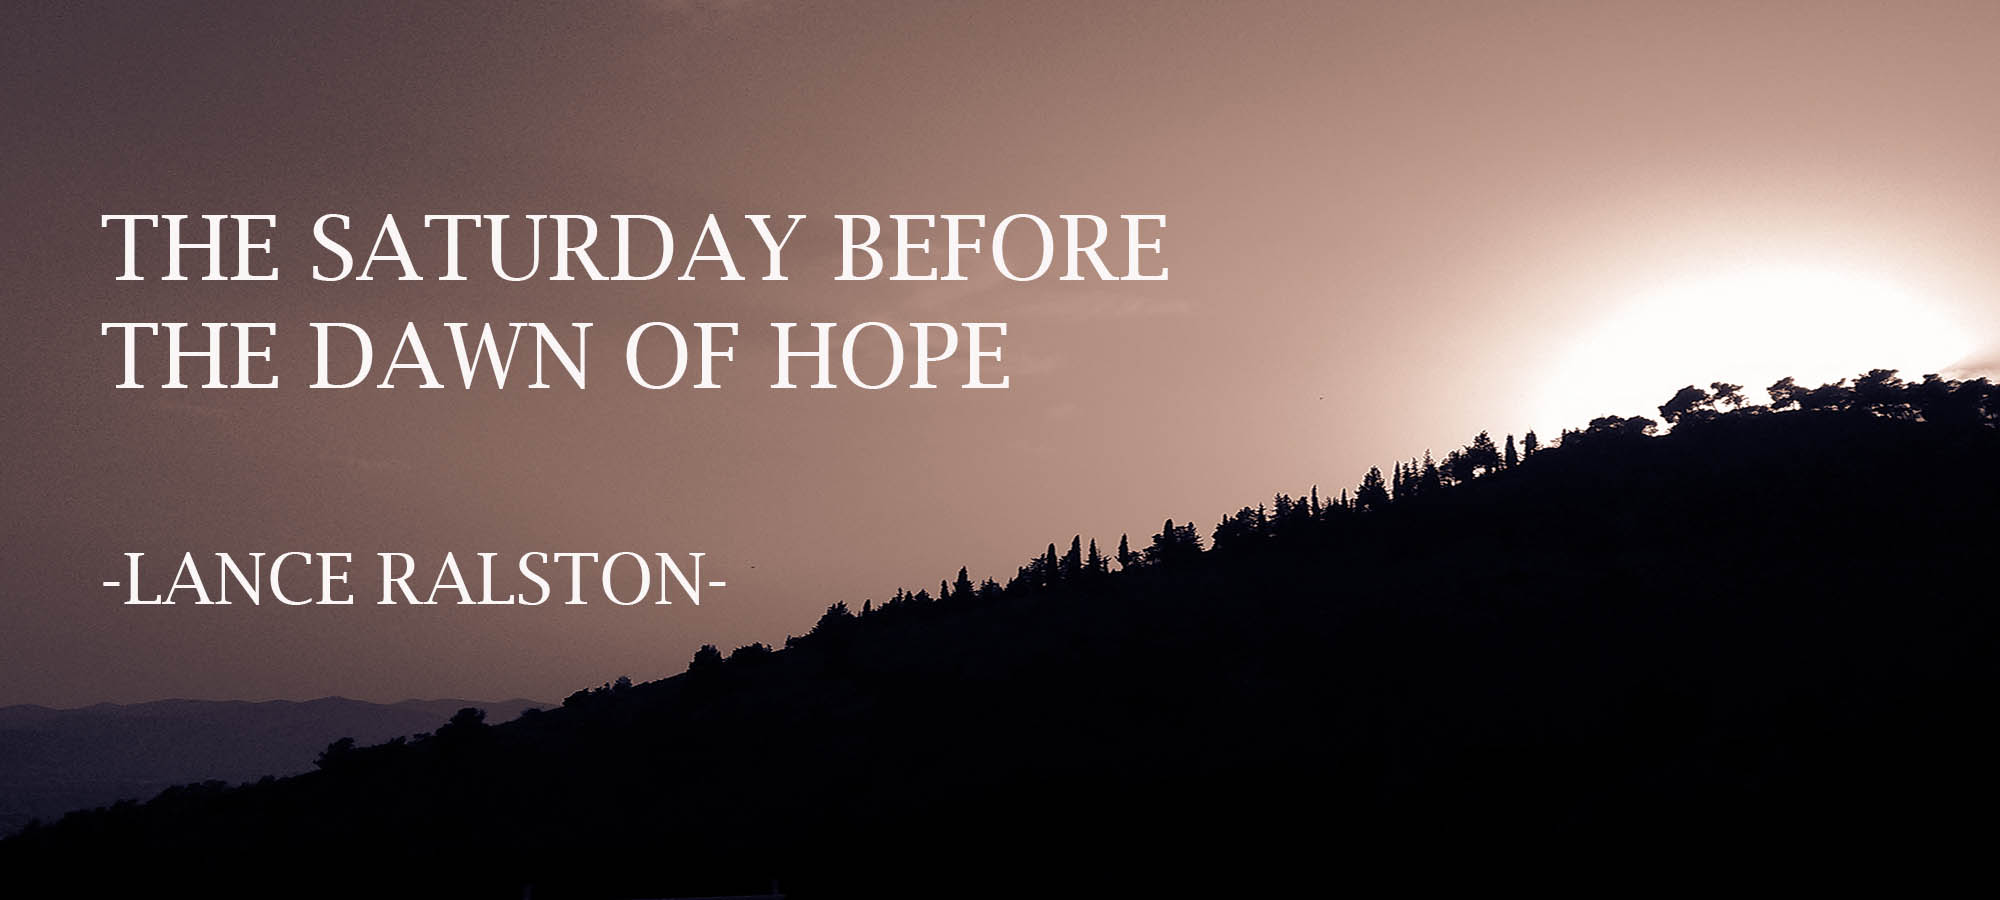 The Saturday Before the Dawn of Hope